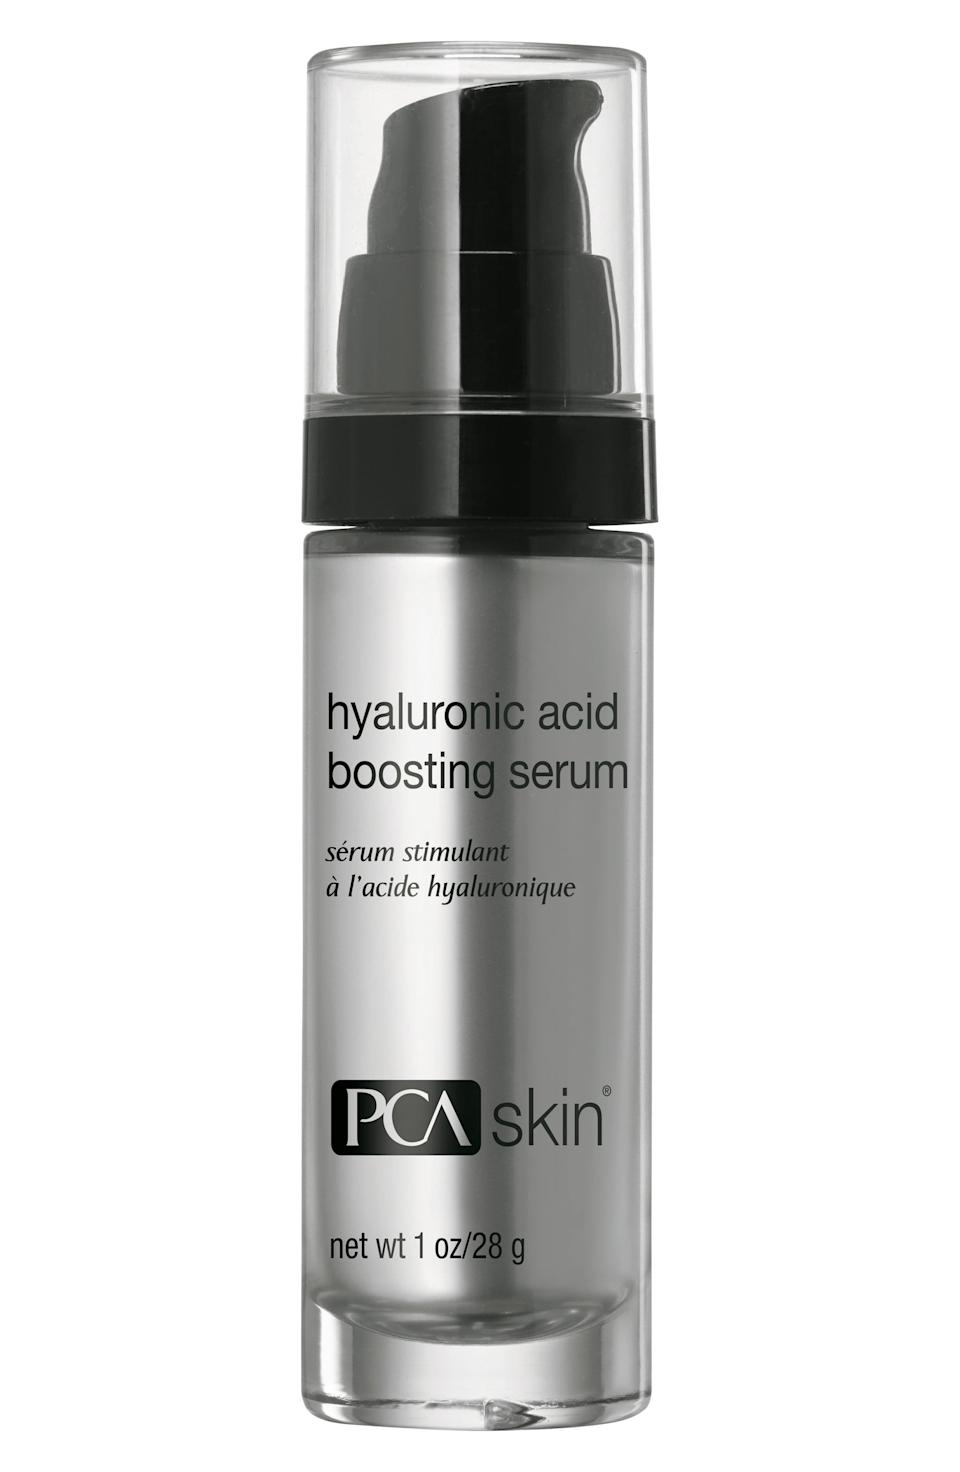 """<p><strong>PCA SKIN</strong></p><p>nordstrom.com</p><p><strong>$117.00</strong></p><p><a href=""""https://go.redirectingat.com?id=74968X1596630&url=https%3A%2F%2Fshop.nordstrom.com%2Fs%2Fpca-skin-hyaluronic-acid-boosting-serum%2F4802780&sref=https%3A%2F%2Fwww.oprahdaily.com%2Fbeauty%2Fskin-makeup%2Fg27529759%2Fbest-hyaluronic-acid-serum%2F"""" rel=""""nofollow noopener"""" target=""""_blank"""" data-ylk=""""slk:SHOP NOW"""" class=""""link rapid-noclick-resp"""">SHOP NOW</a></p><p>While a splurge, """"this line is known for its mild, non irritating formulations and this lightweight product complements sensitive skin types well,"""" says <a href=""""http://montgomery-dermatology.com/"""" rel=""""nofollow noopener"""" target=""""_blank"""" data-ylk=""""slk:Ilyas"""" class=""""link rapid-noclick-resp"""">Ilyas</a>. It's long lasting for great results.</p>"""